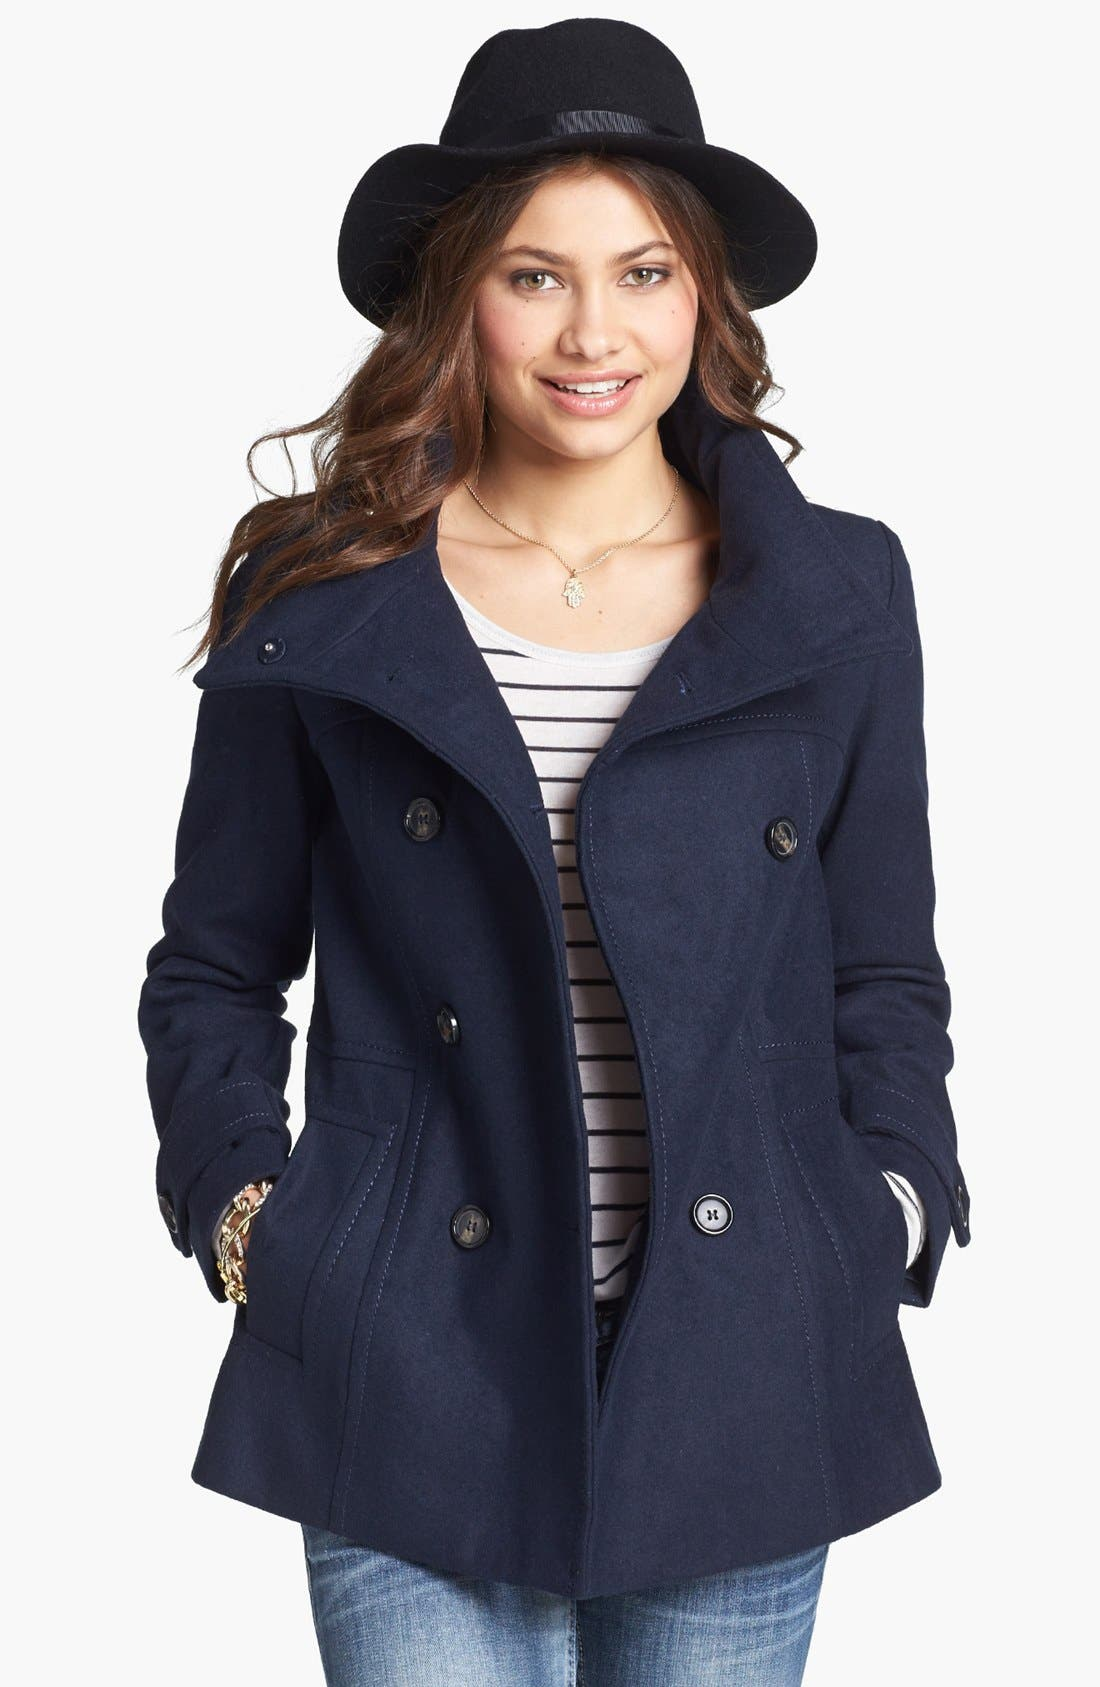 Alternate Image 1 Selected - Thread & Supply Double Breasted Peacoat (Online Only)